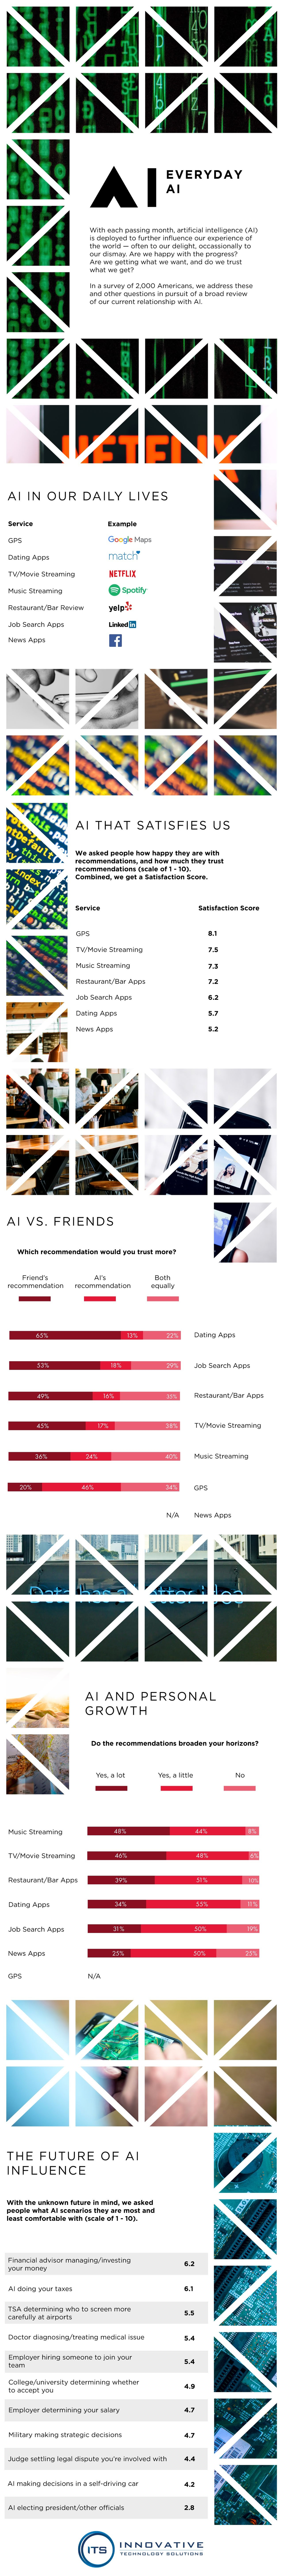 Study reveals which AI-driven apps consumers trust the most #infographic